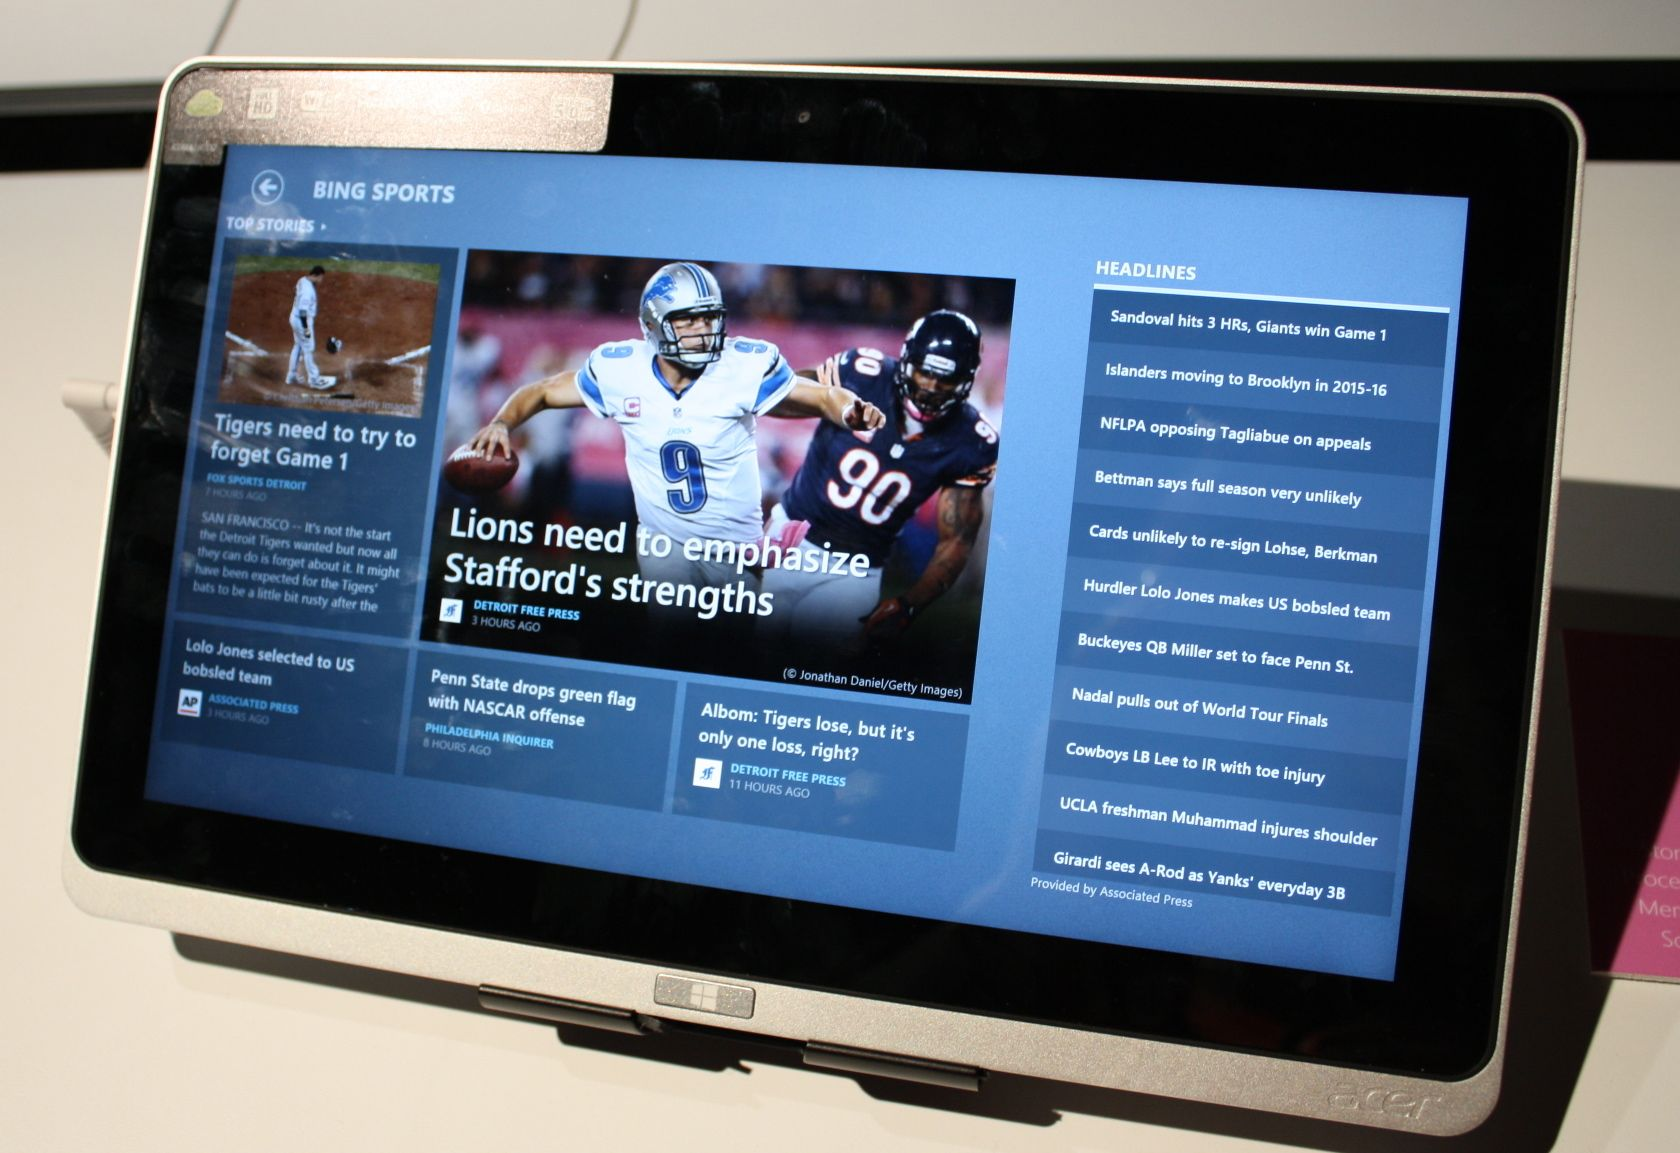 The Bing Sports app on the Acer Iconia Tab A700.